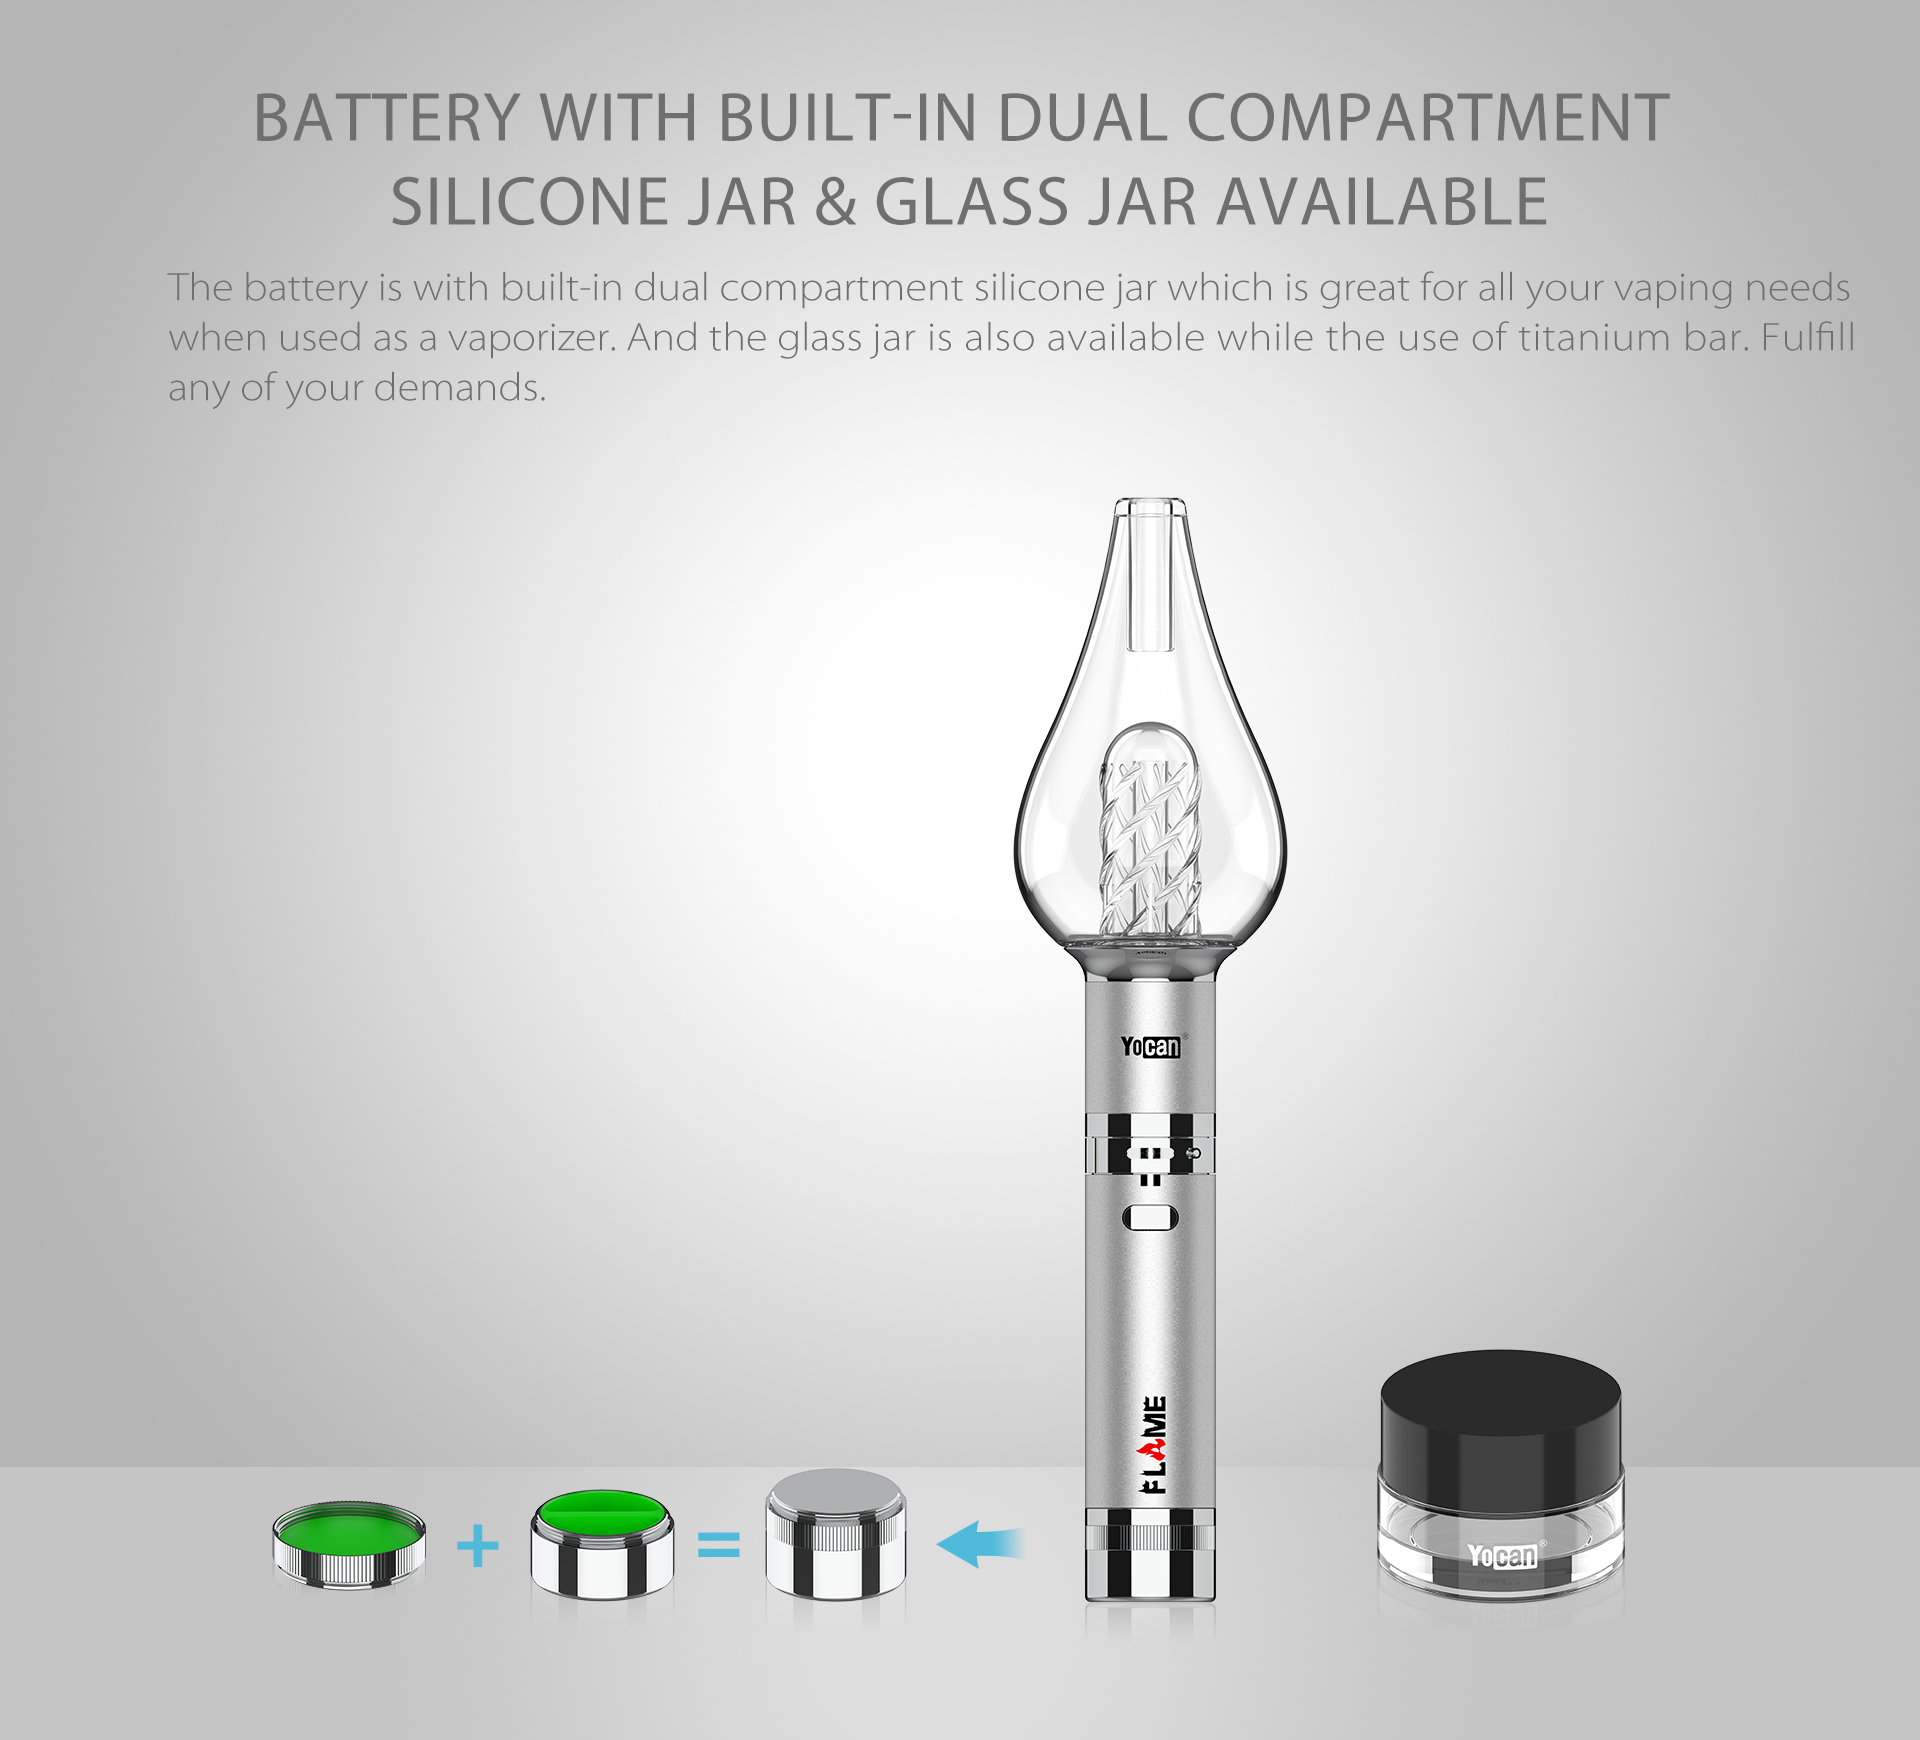 Yocan Flame vaporizer pen comes with built-in dual compartment silicone jar.